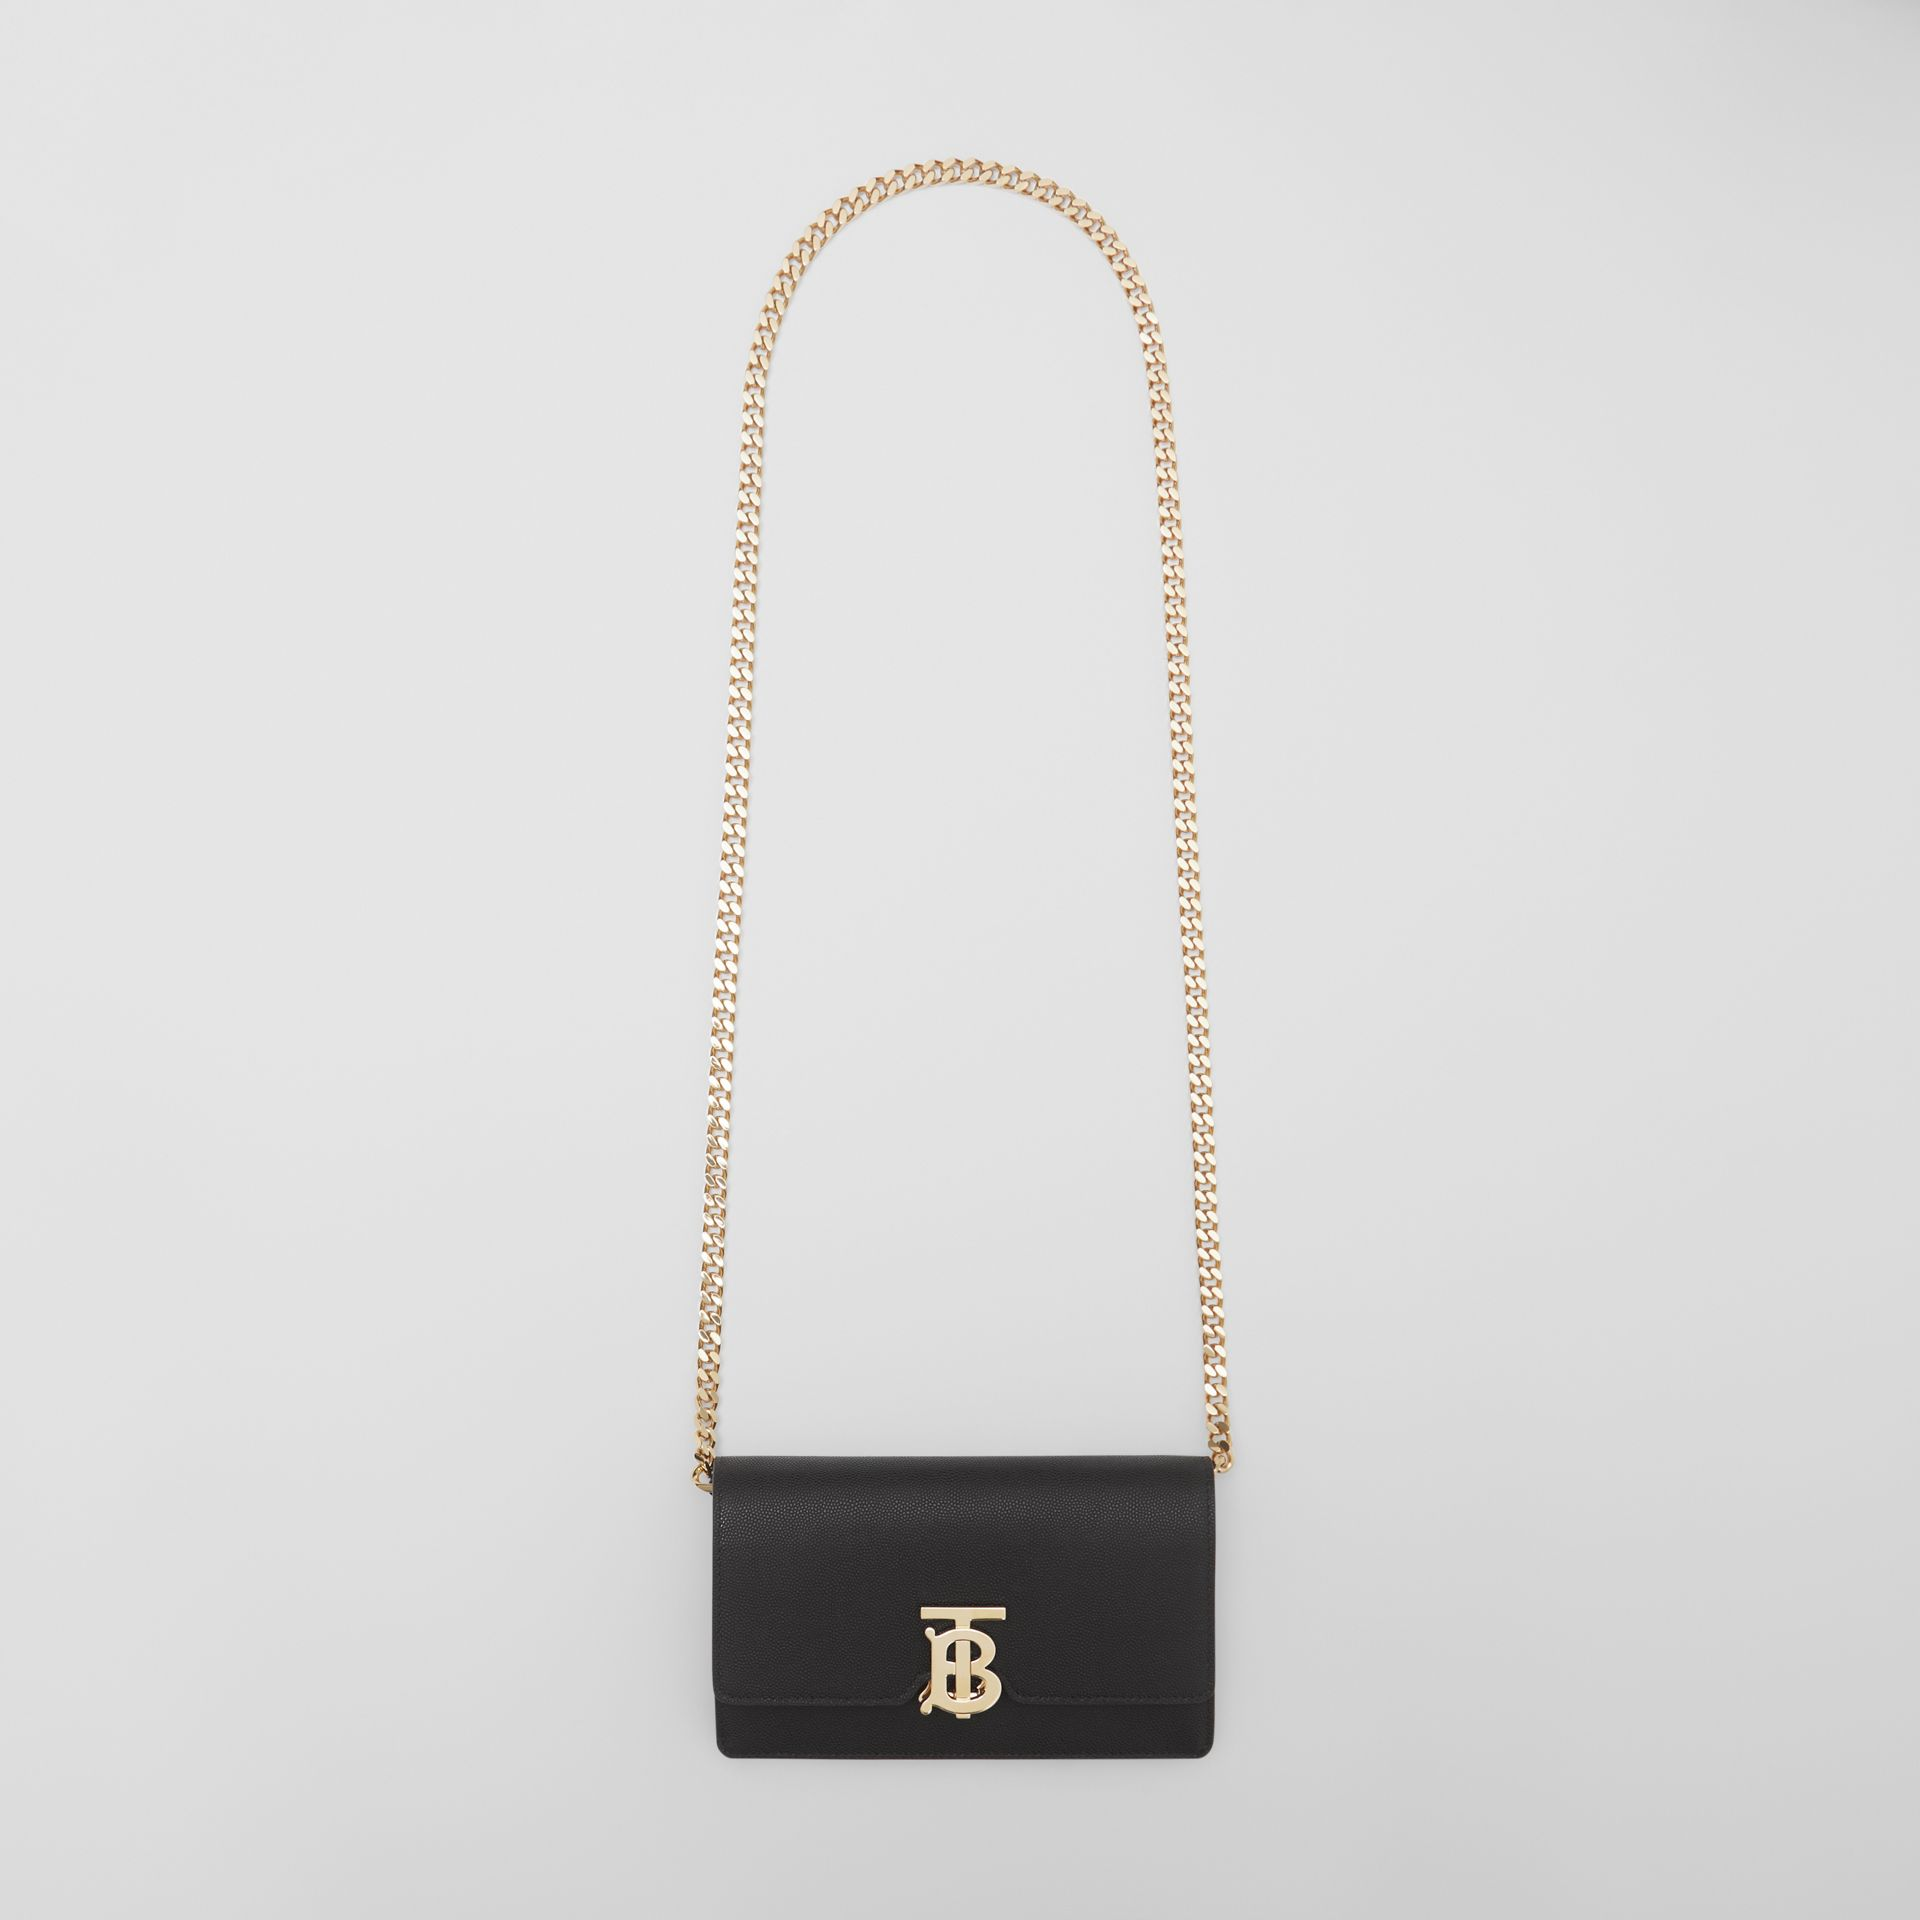 Small Grainy Leather Shoulder Bag in Black - Women | Burberry United Kingdom - gallery image 2